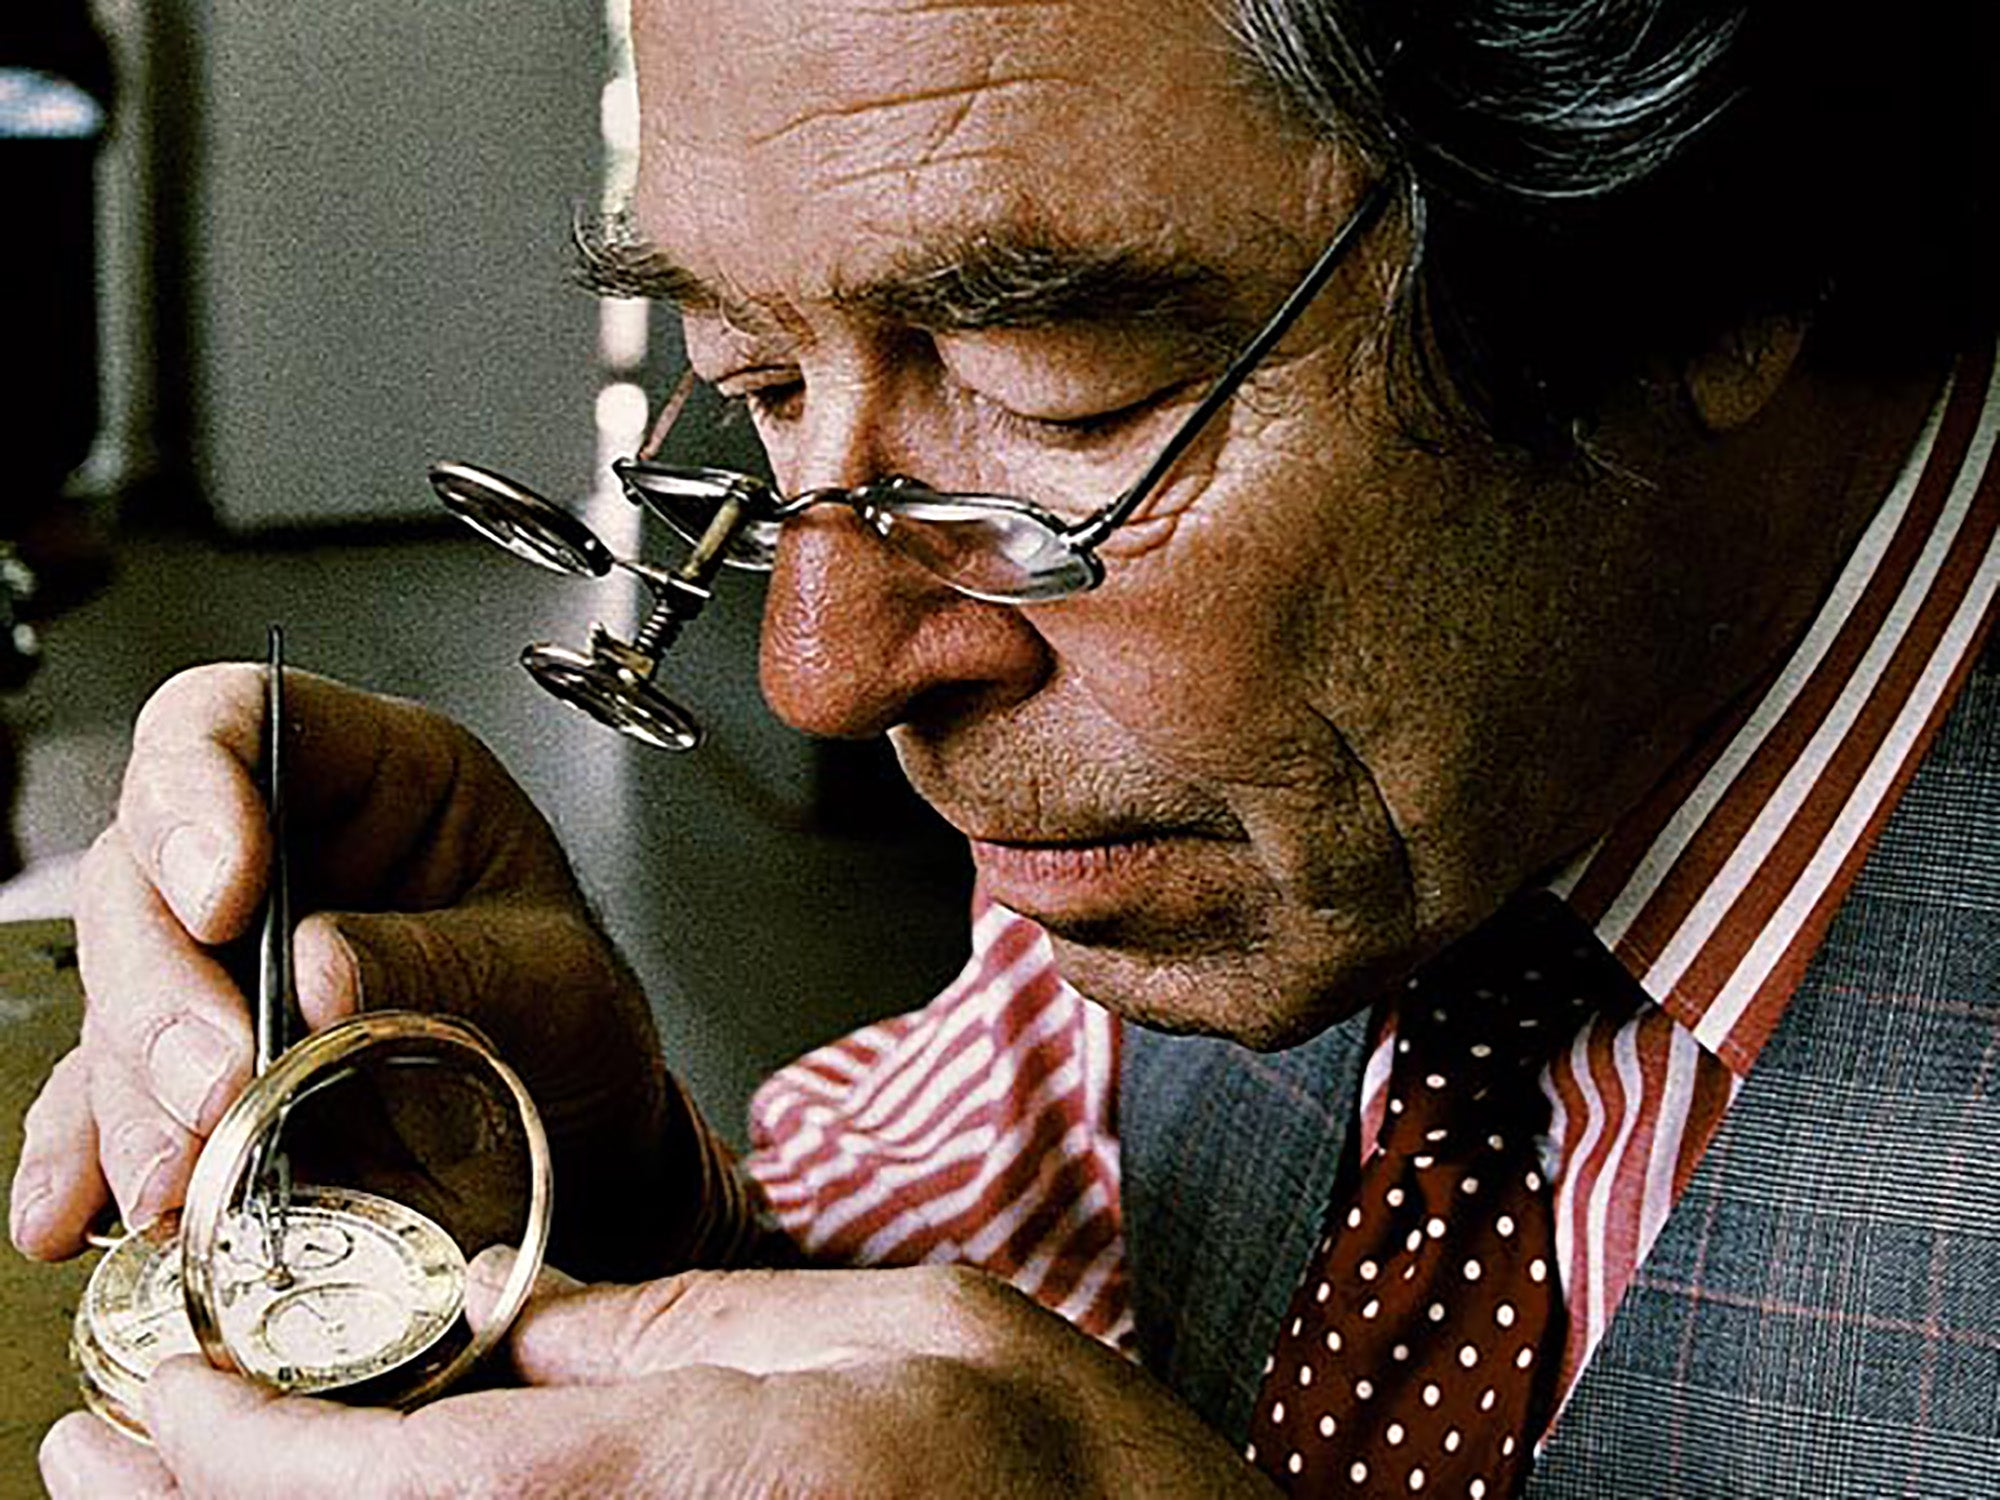 5-1999-george-daniels-inventor-of-the-co-axial-escapement